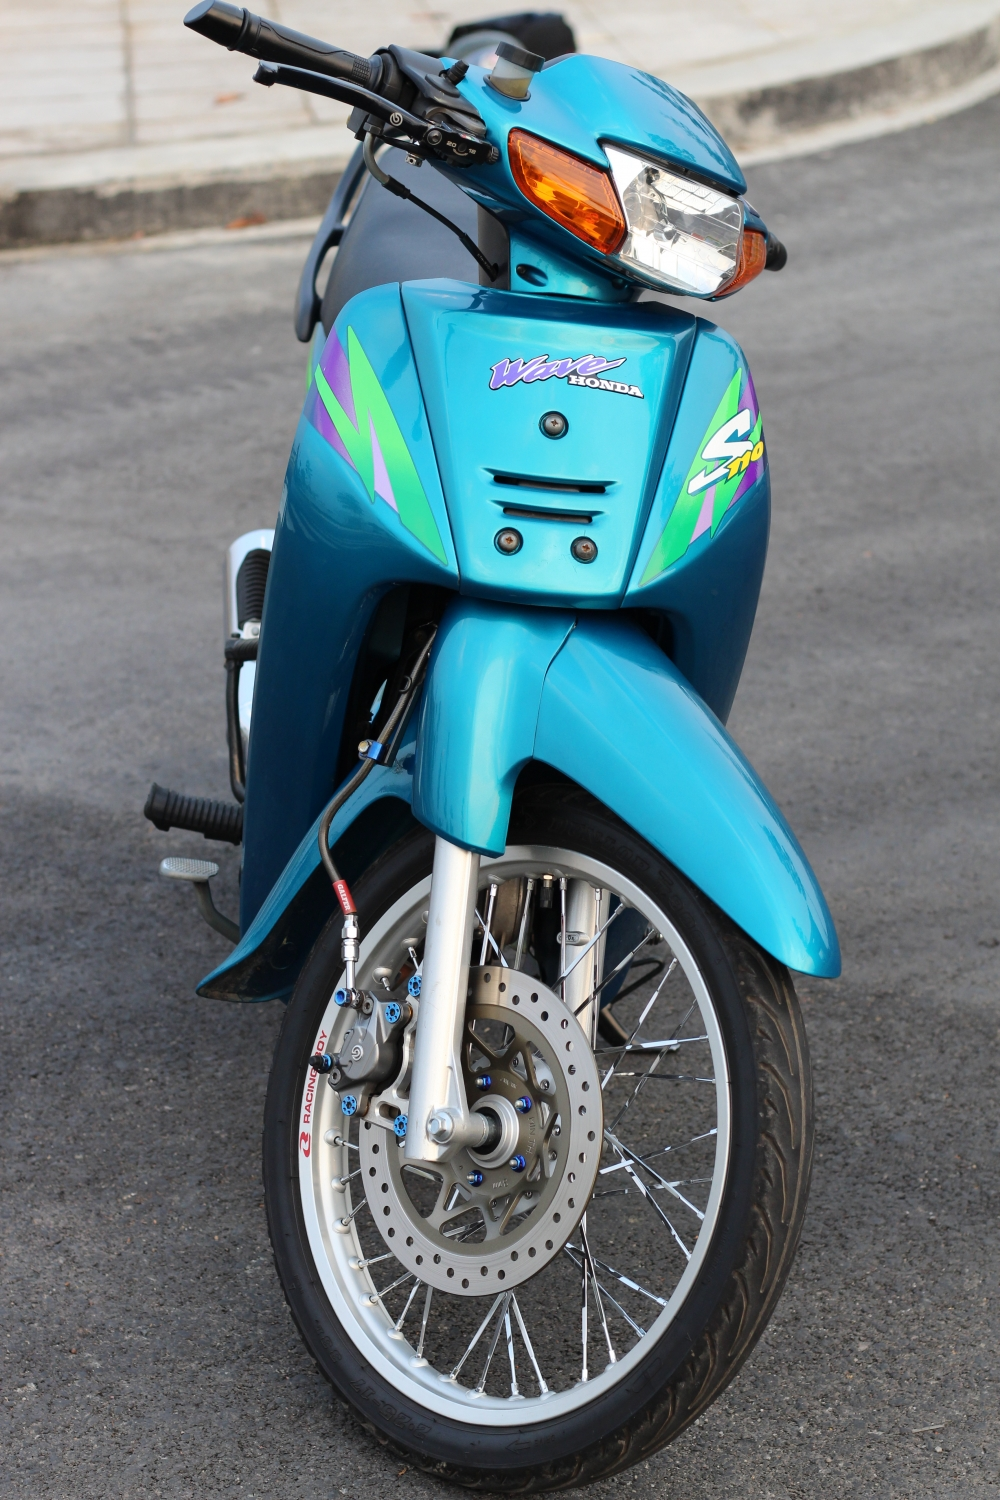 full bo anh ve chiec wave S 110 blue - 2